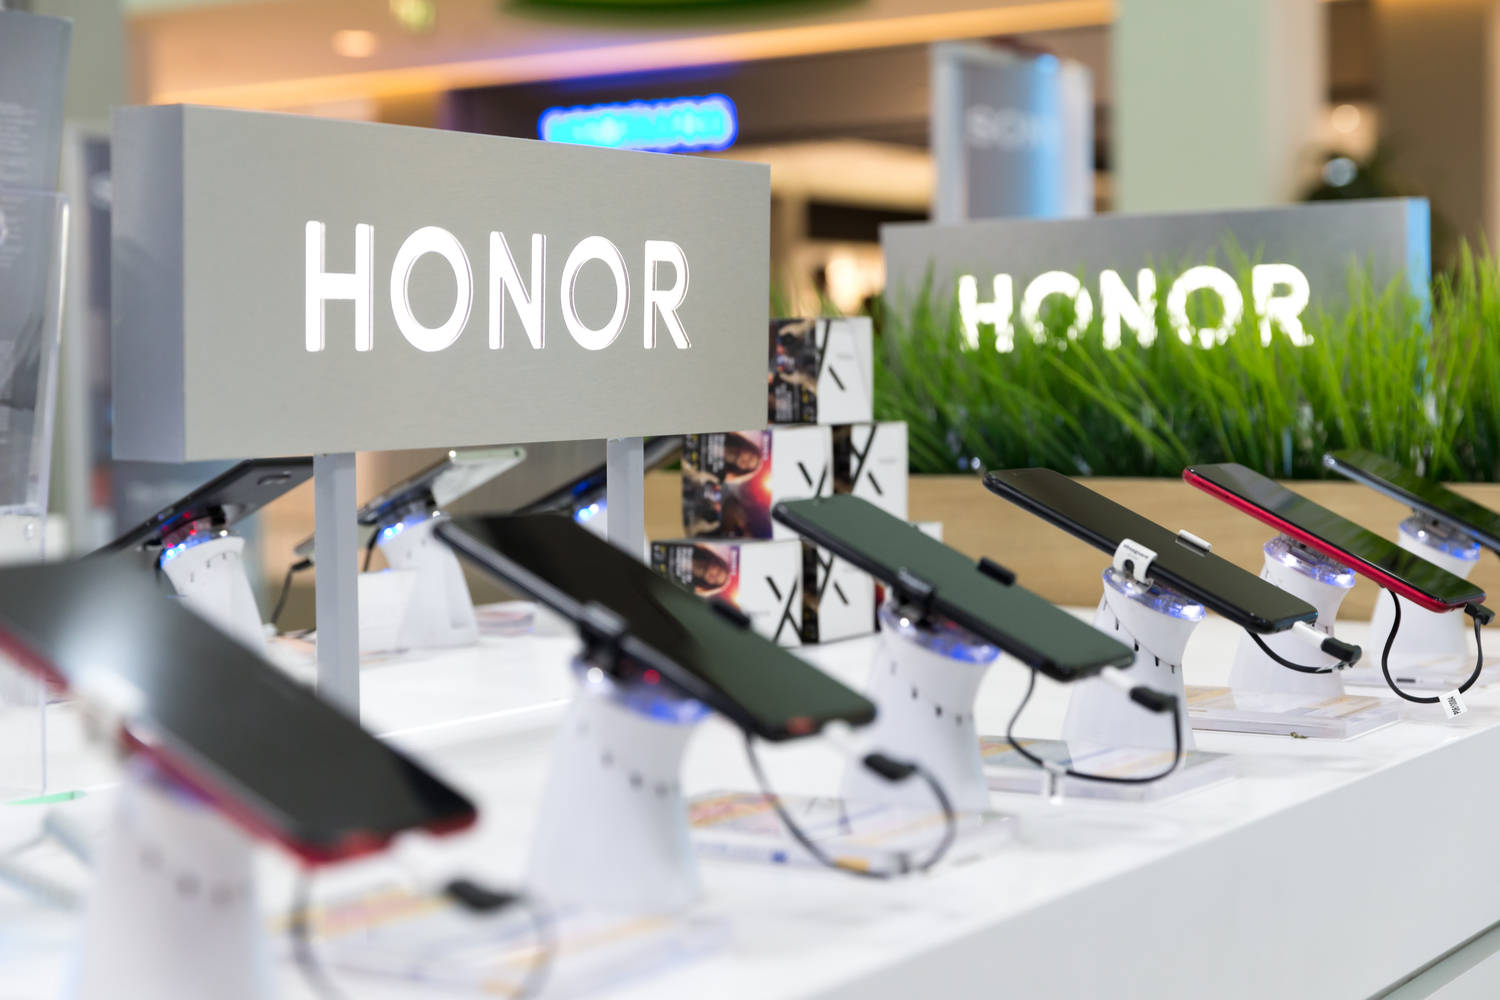 Honor to launch first smartphone with digital yuan wallet support